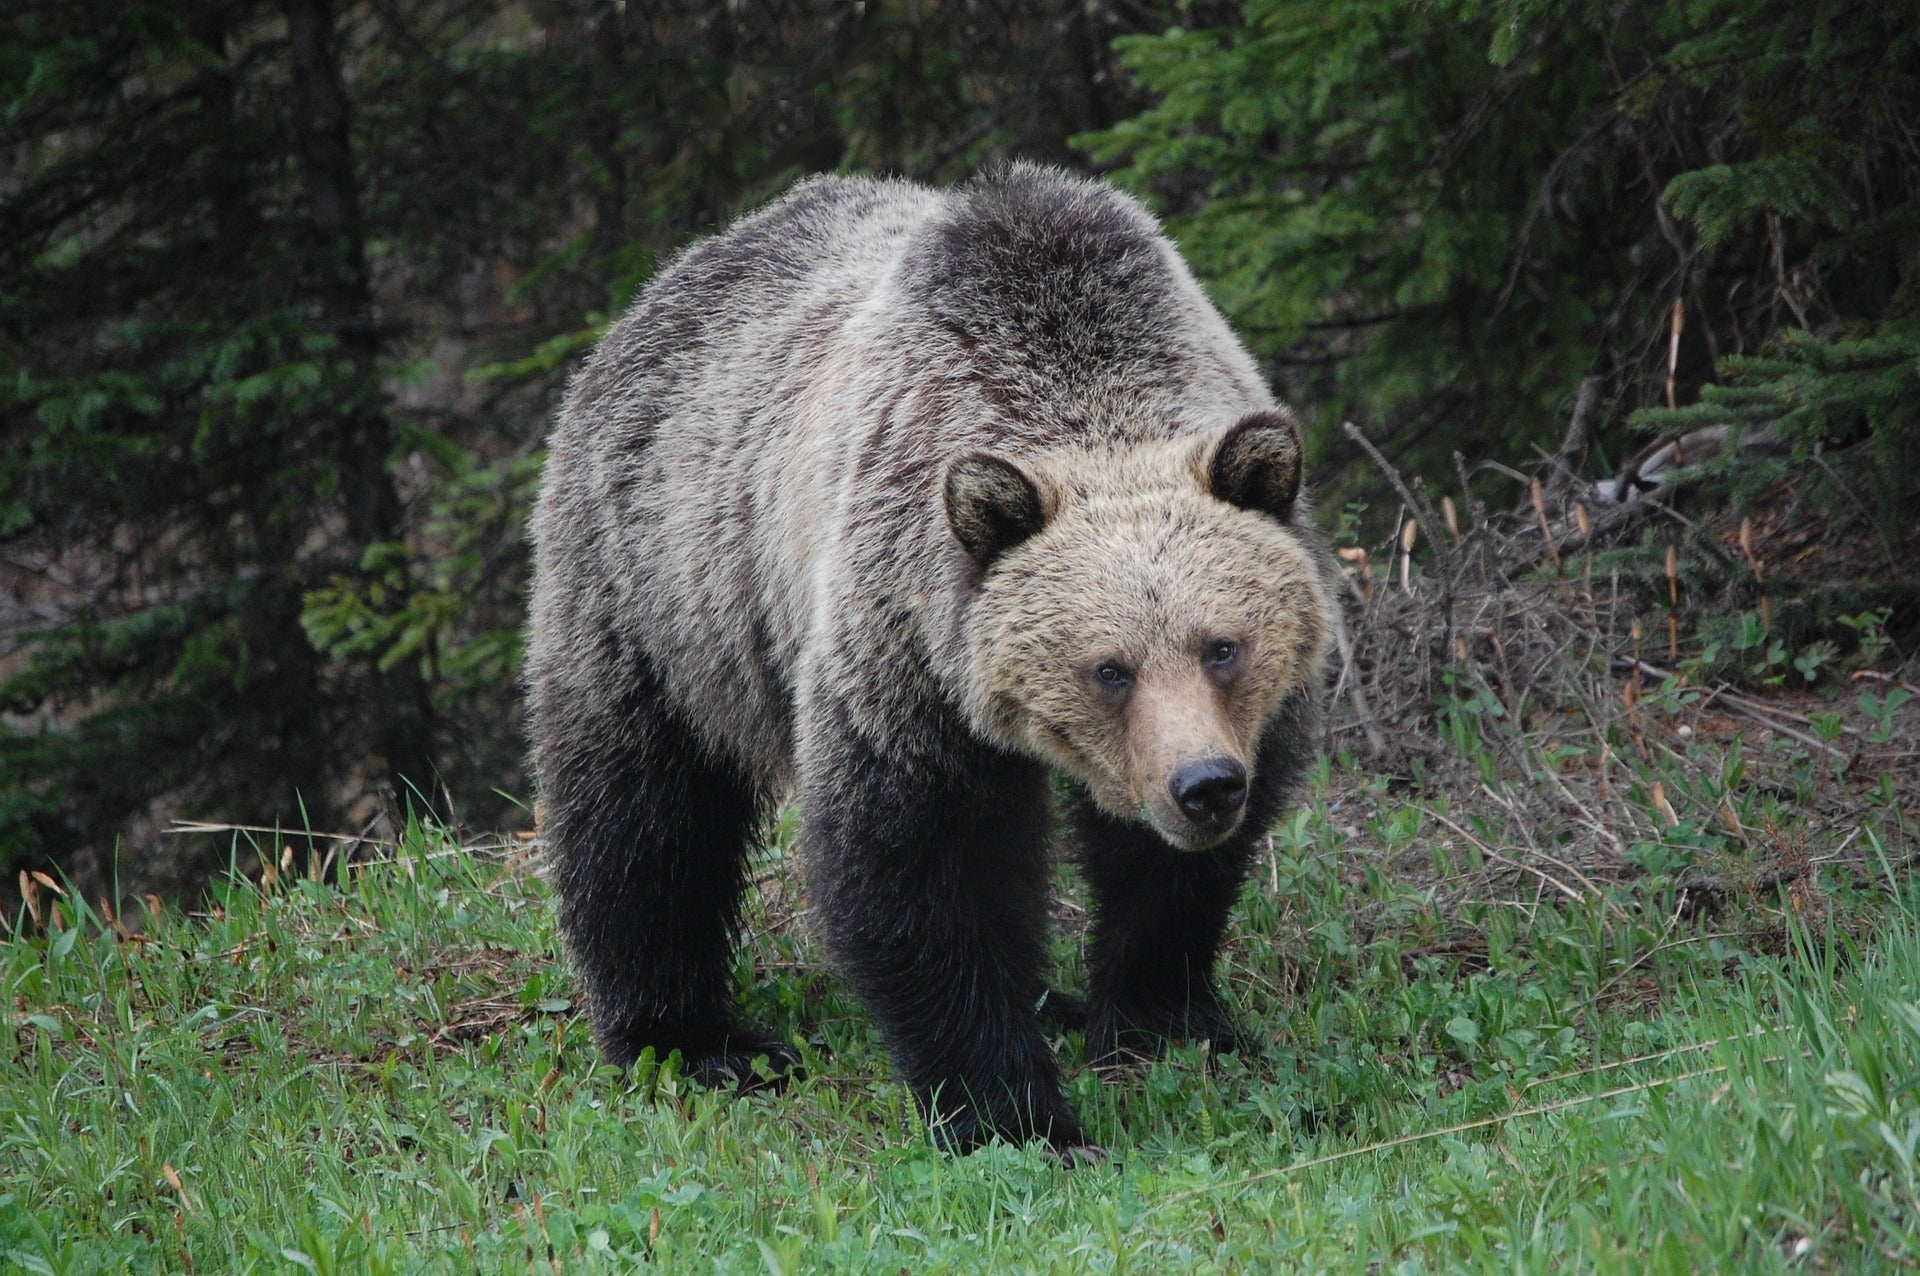 Grizzly bear attack is suspected in the death of an Alberta woman.